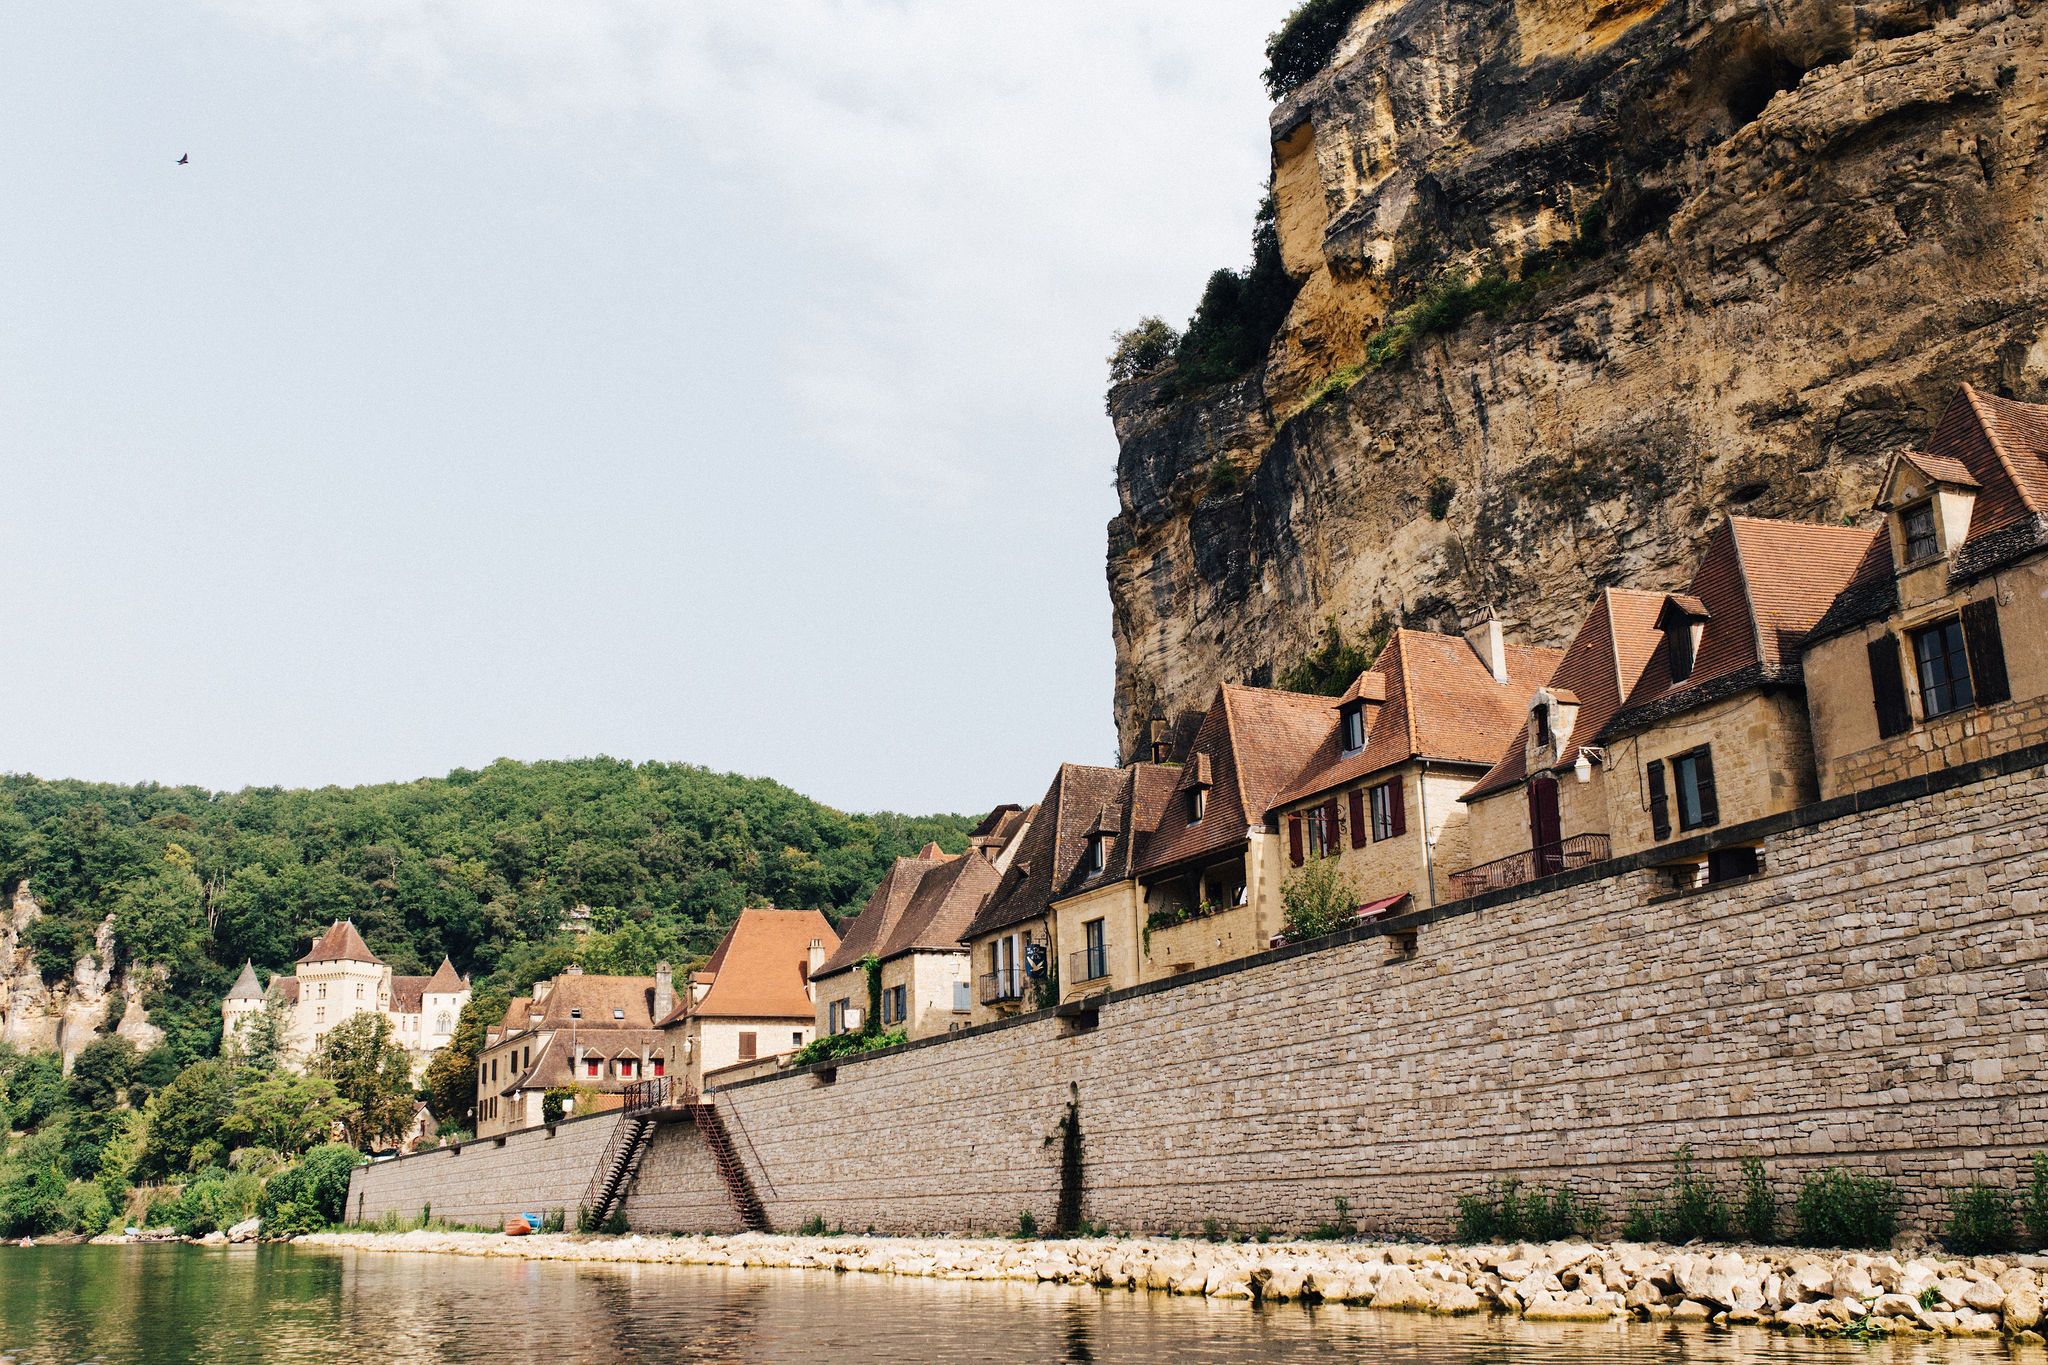 Village of La Roque Gageac from the Dordogne river